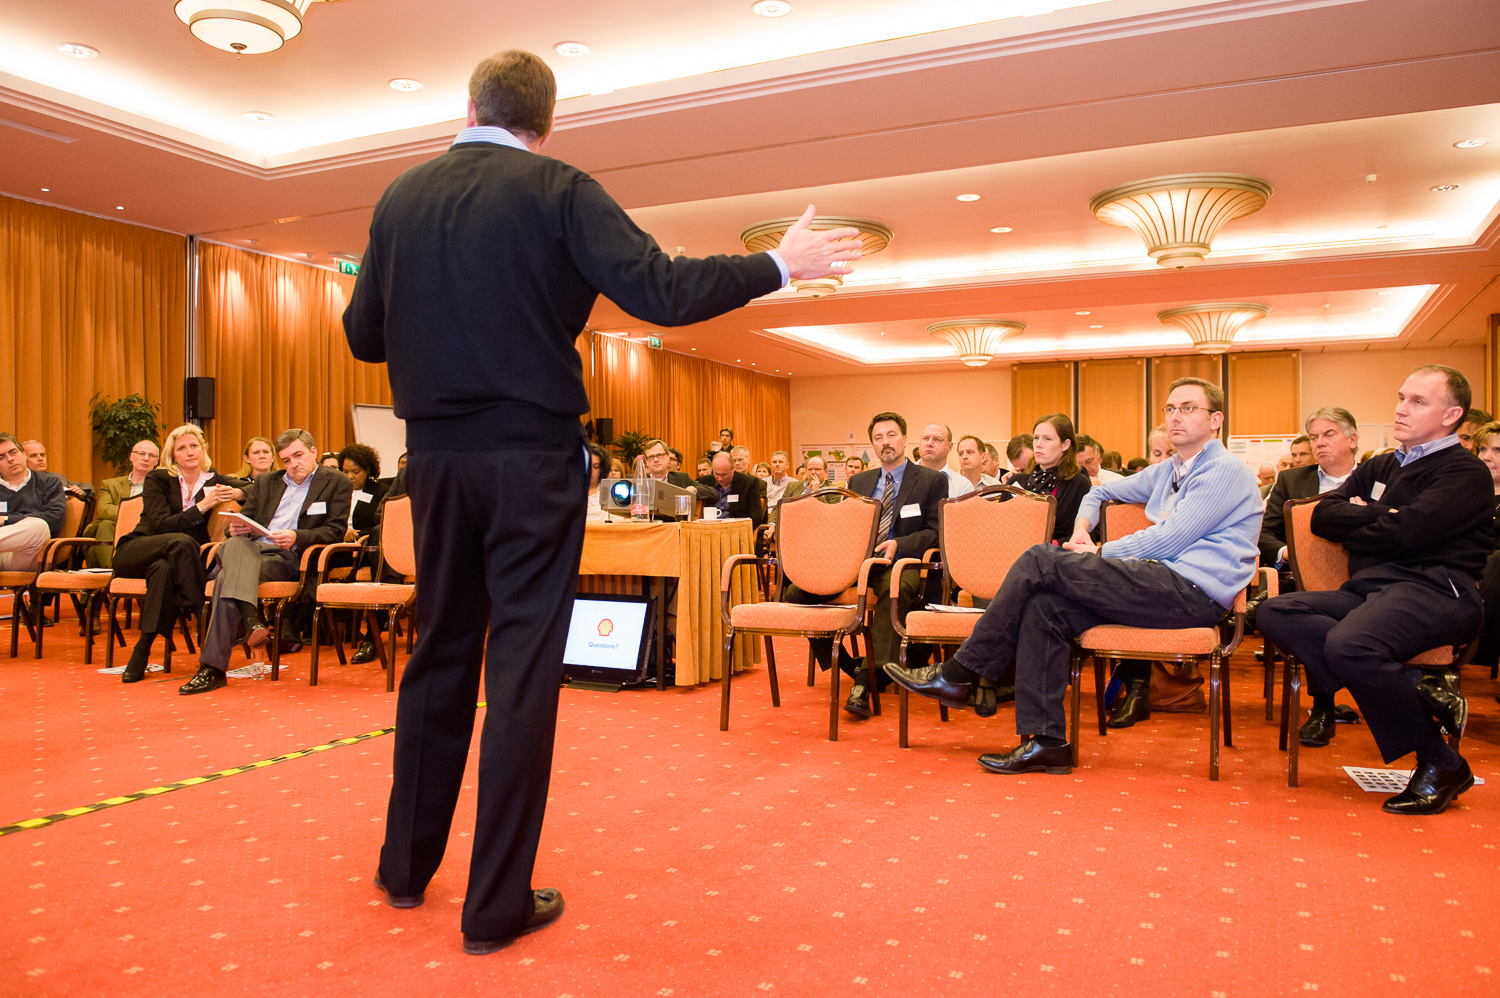 Executive Leadership Program. Palace Hotel, Noordwijk, 2010.